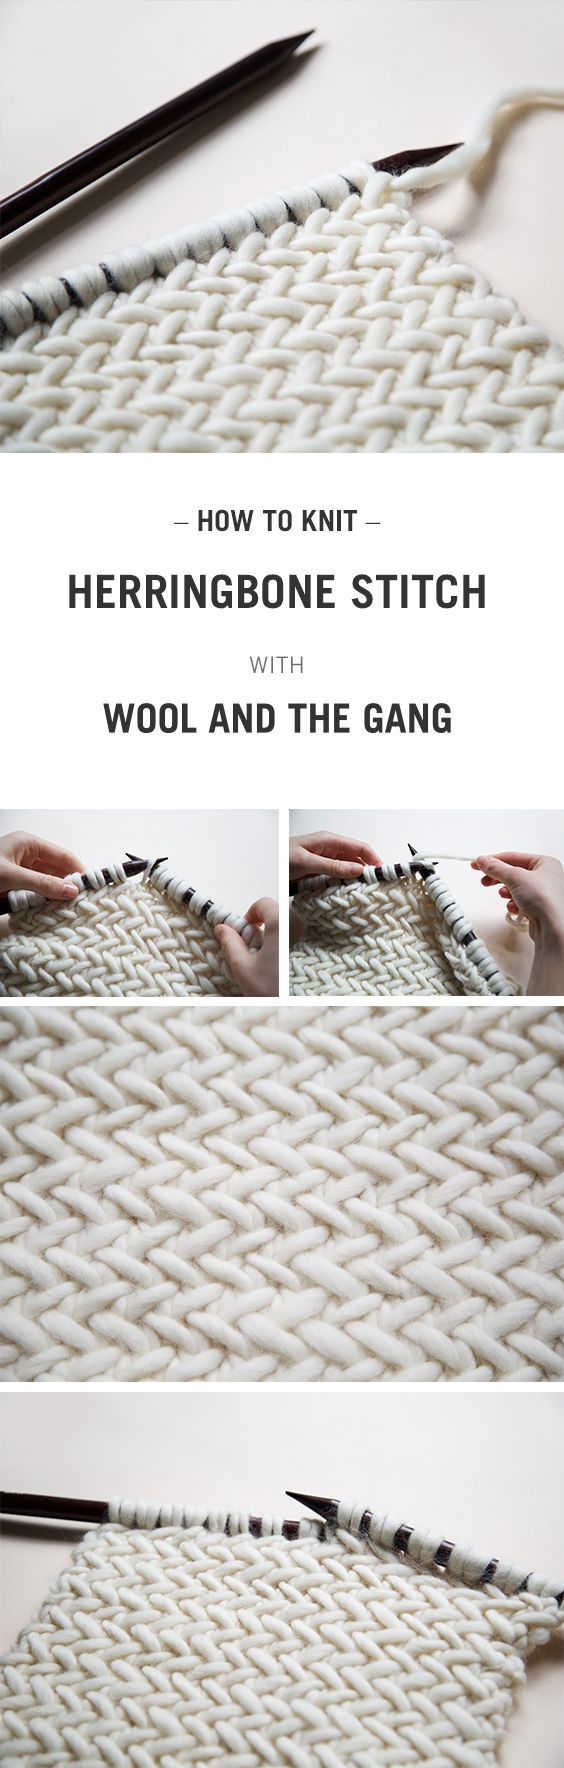 346 best Yarn & Pom Poms images on Pinterest | Knits, Knit crochet ...